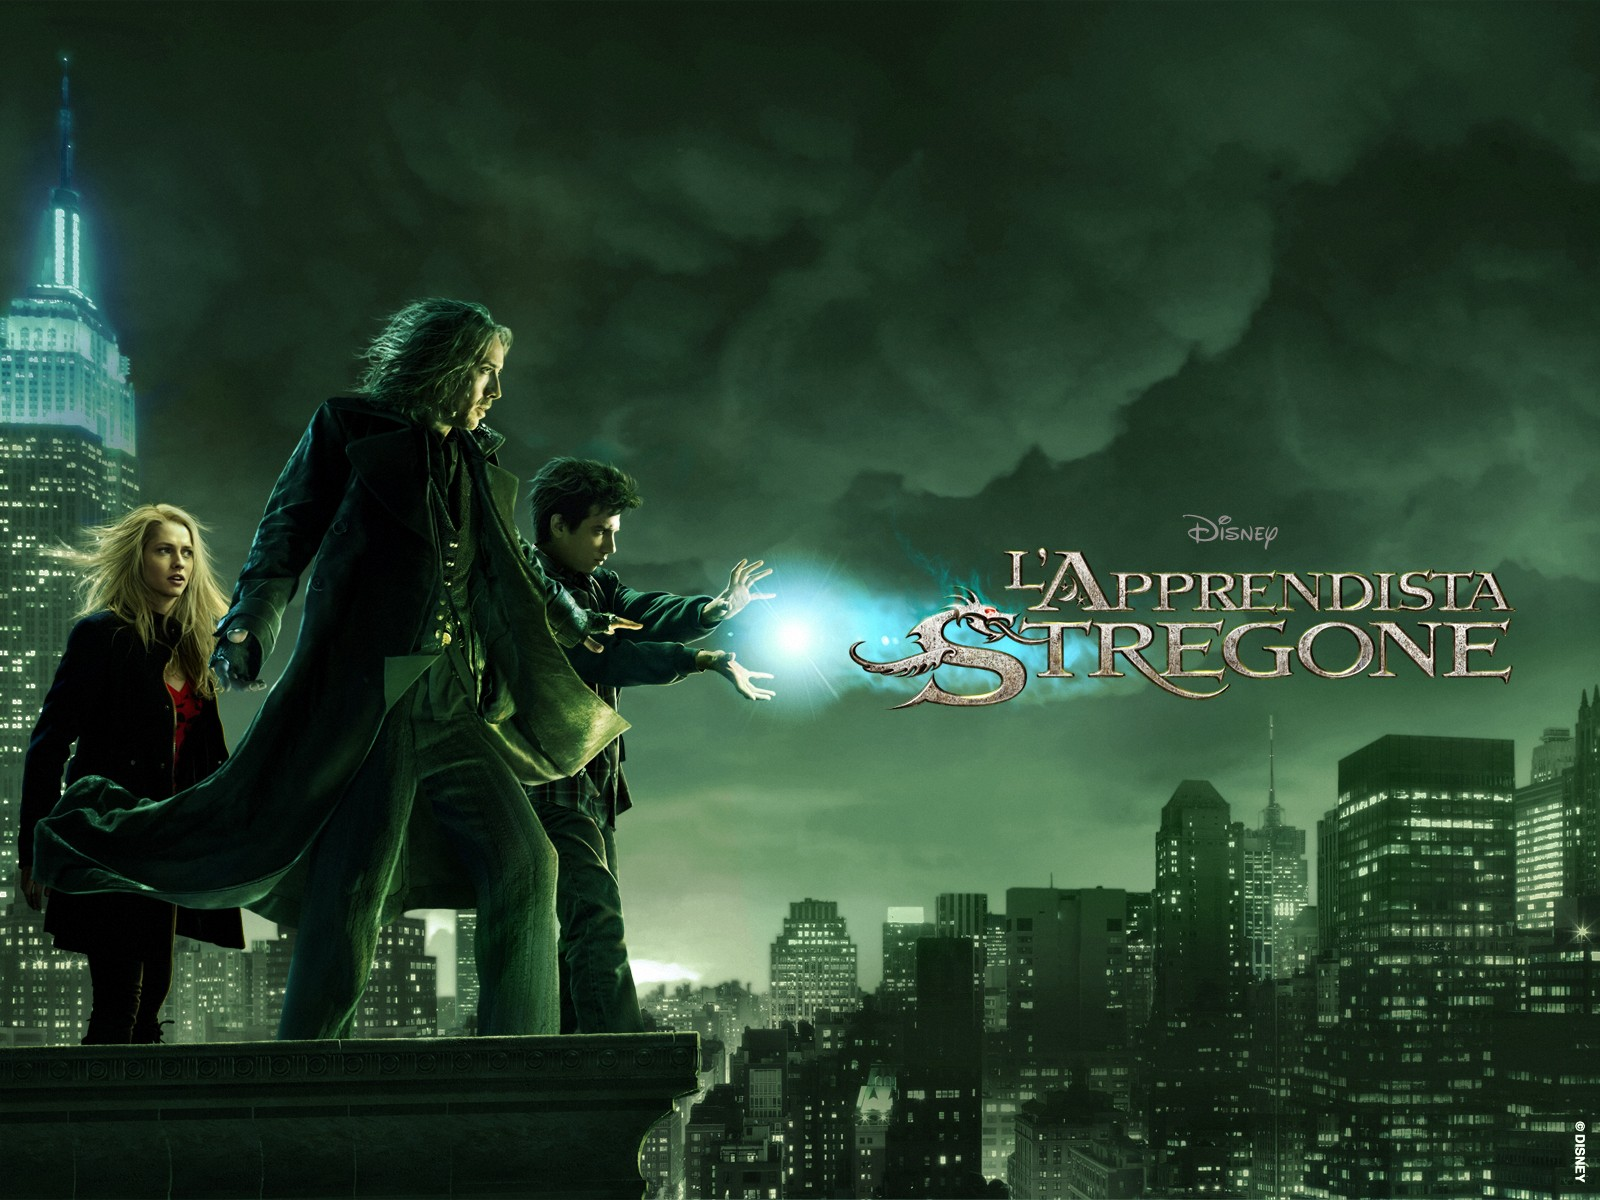 Wallpaper del film The Sorcerer's Apprentice